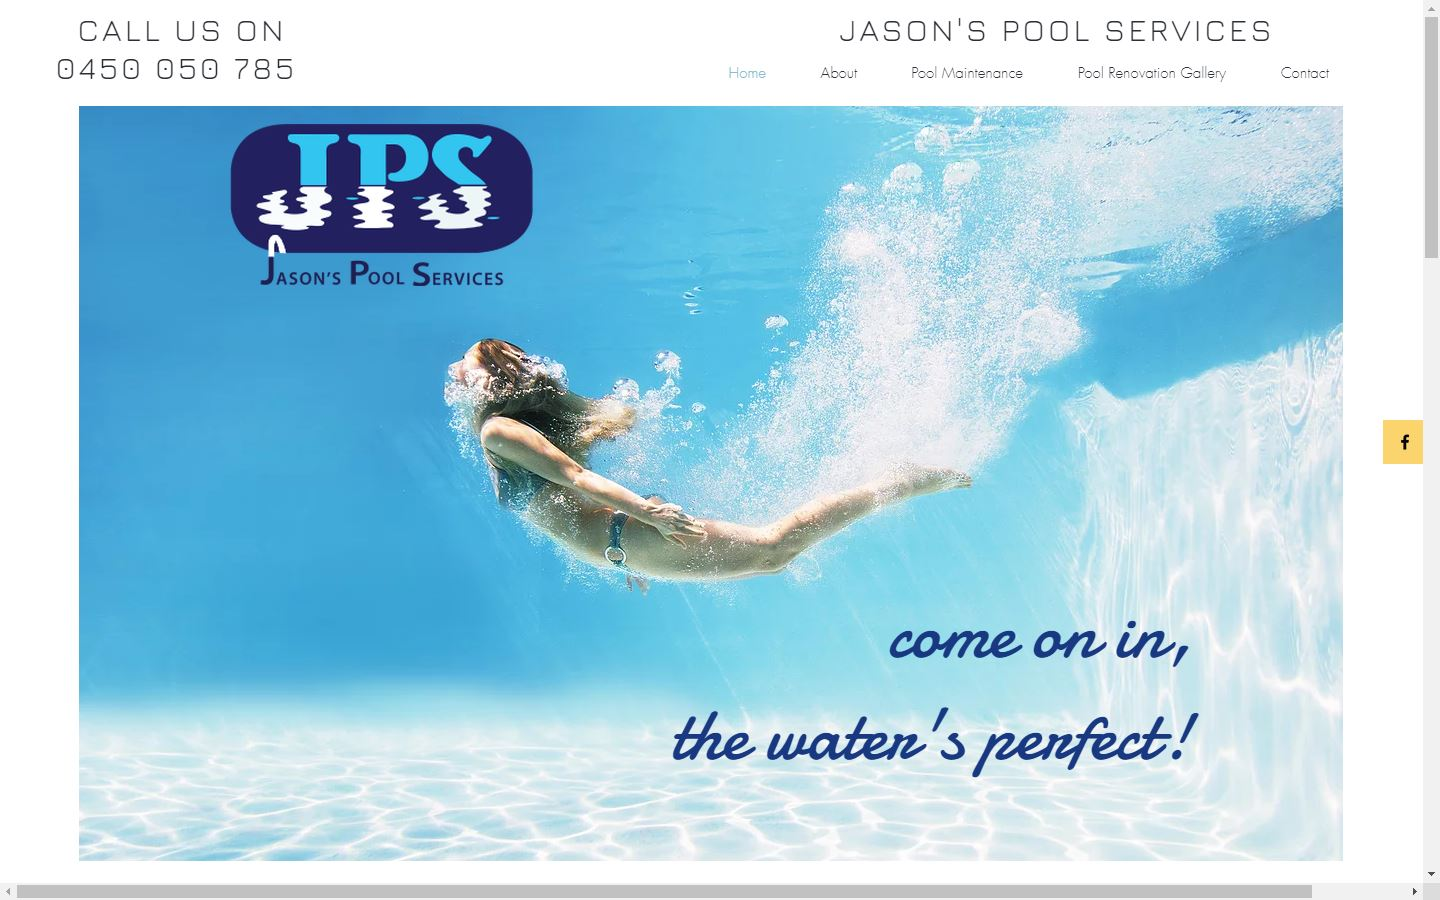 Jason's Pool Services